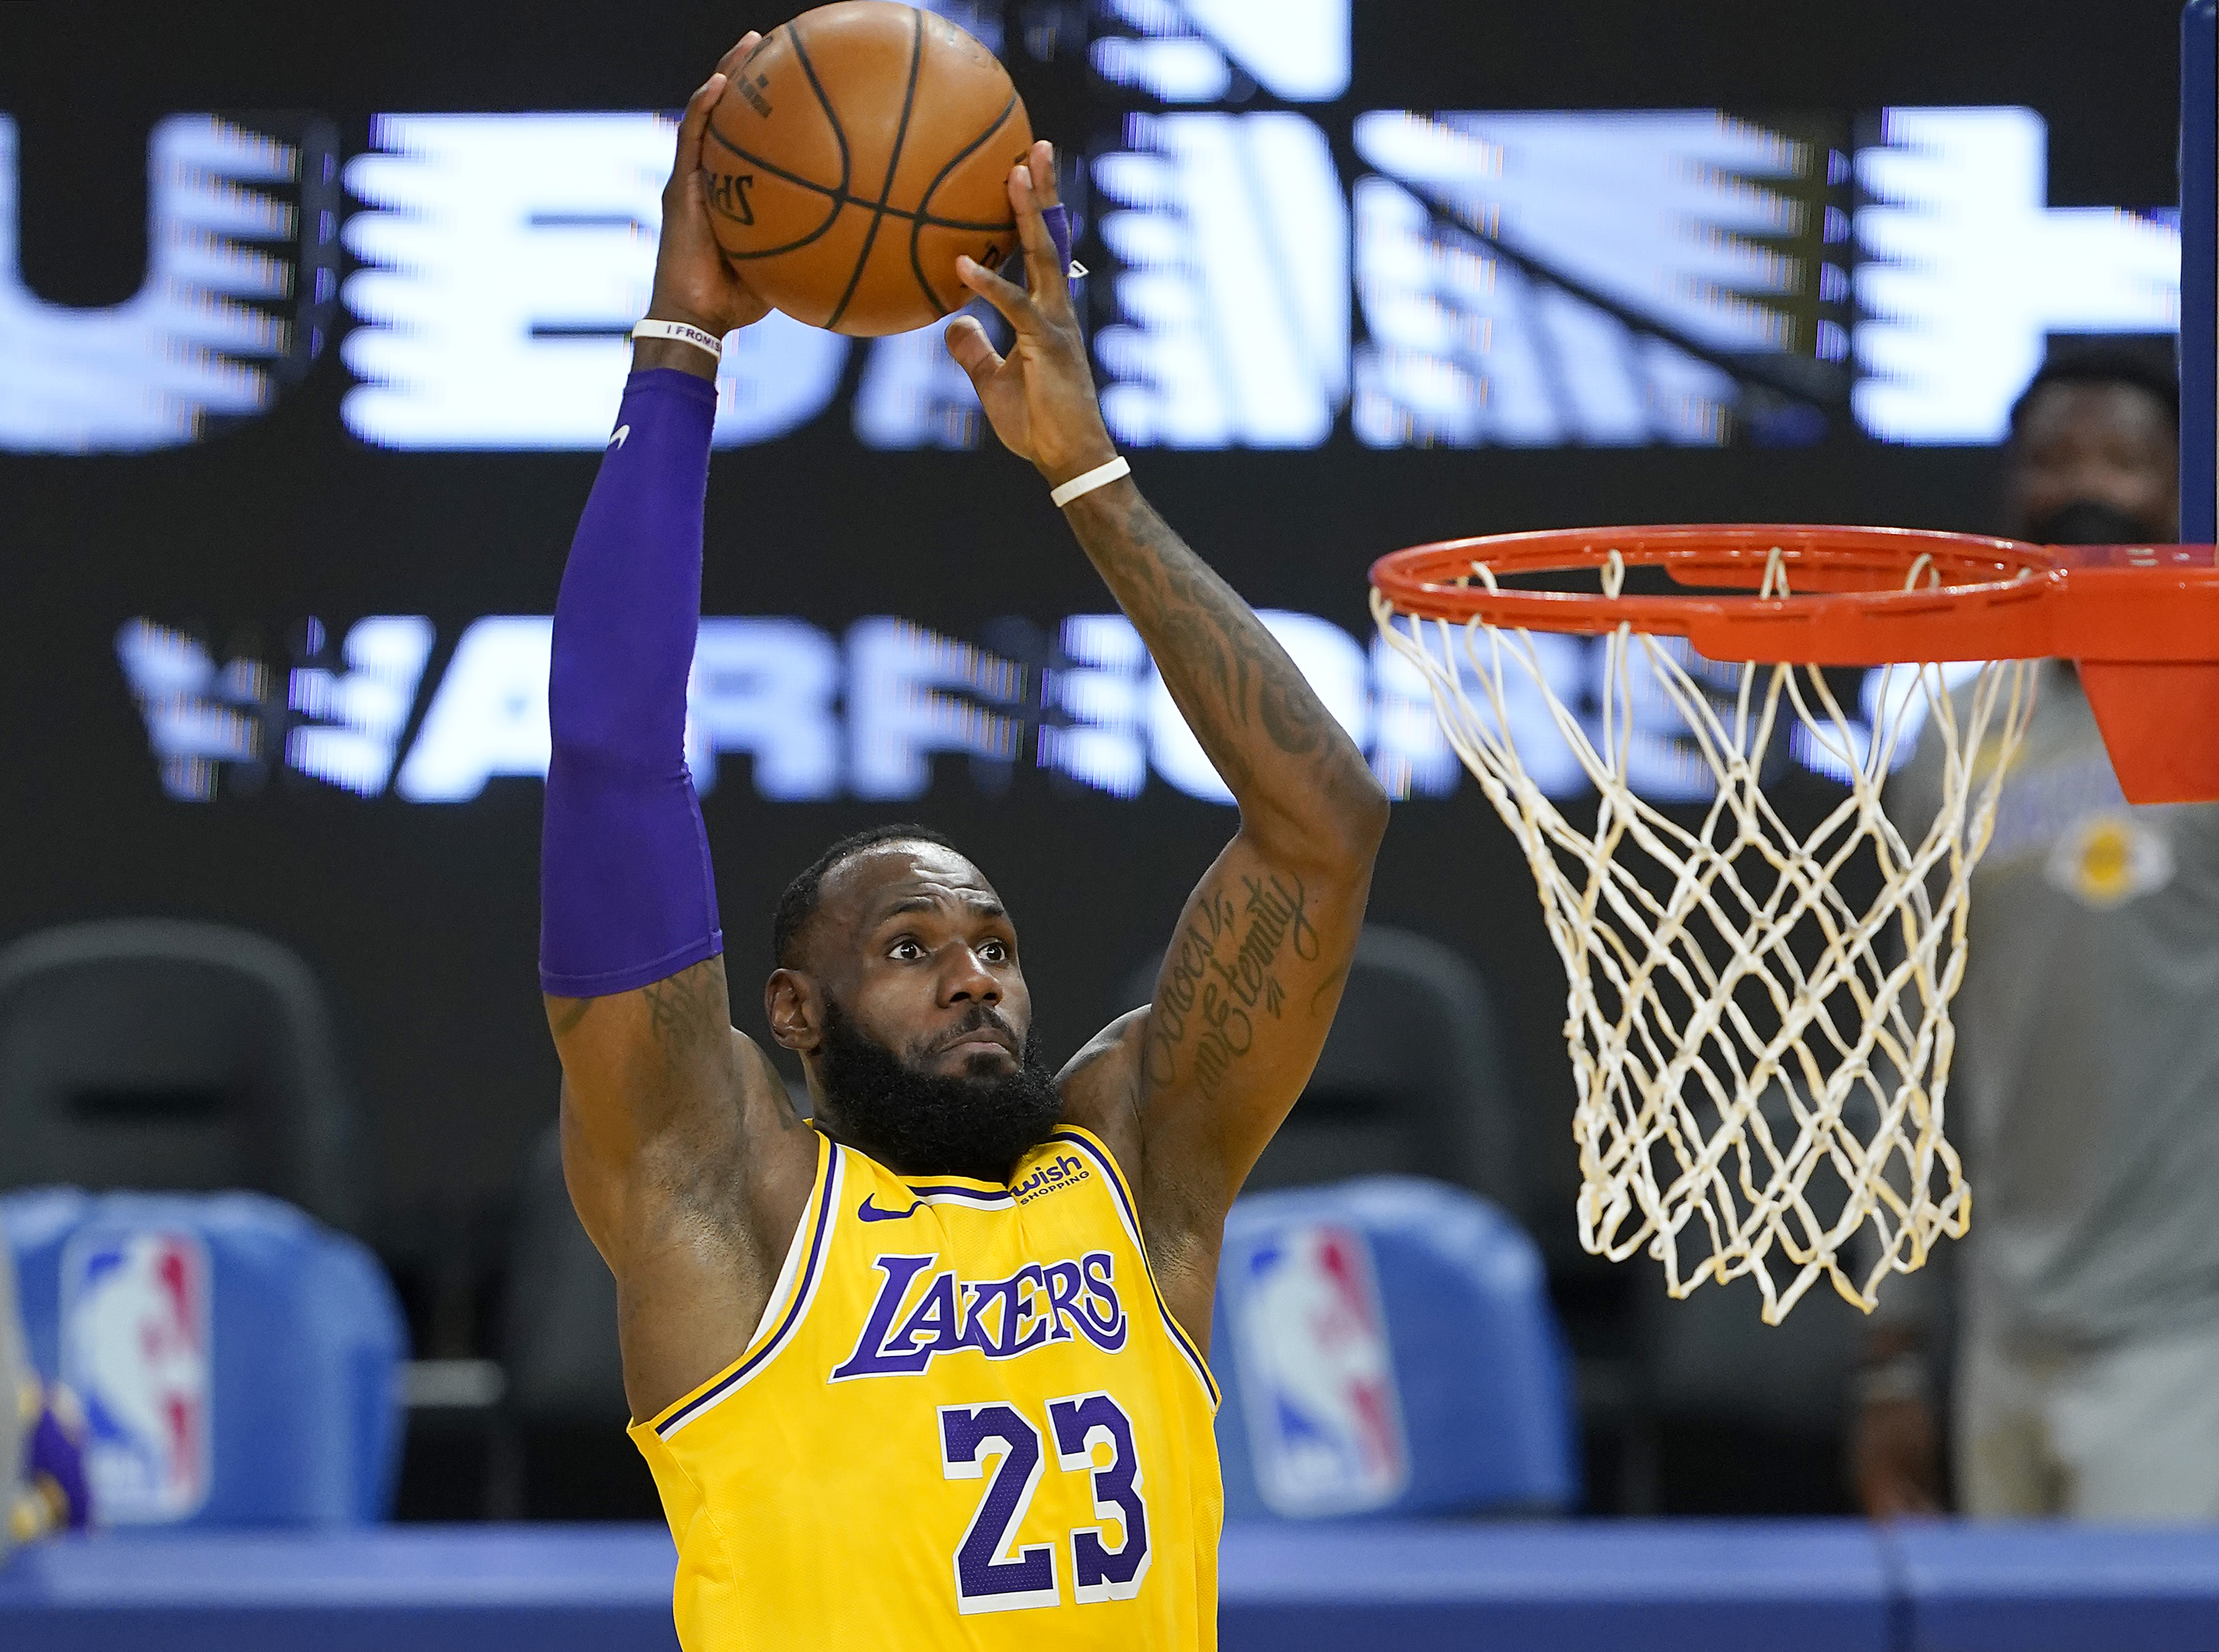 For a Cool $250,000, You Can Own a 13-Second Clip of LeBron James Dunking in NBA Digital Assets